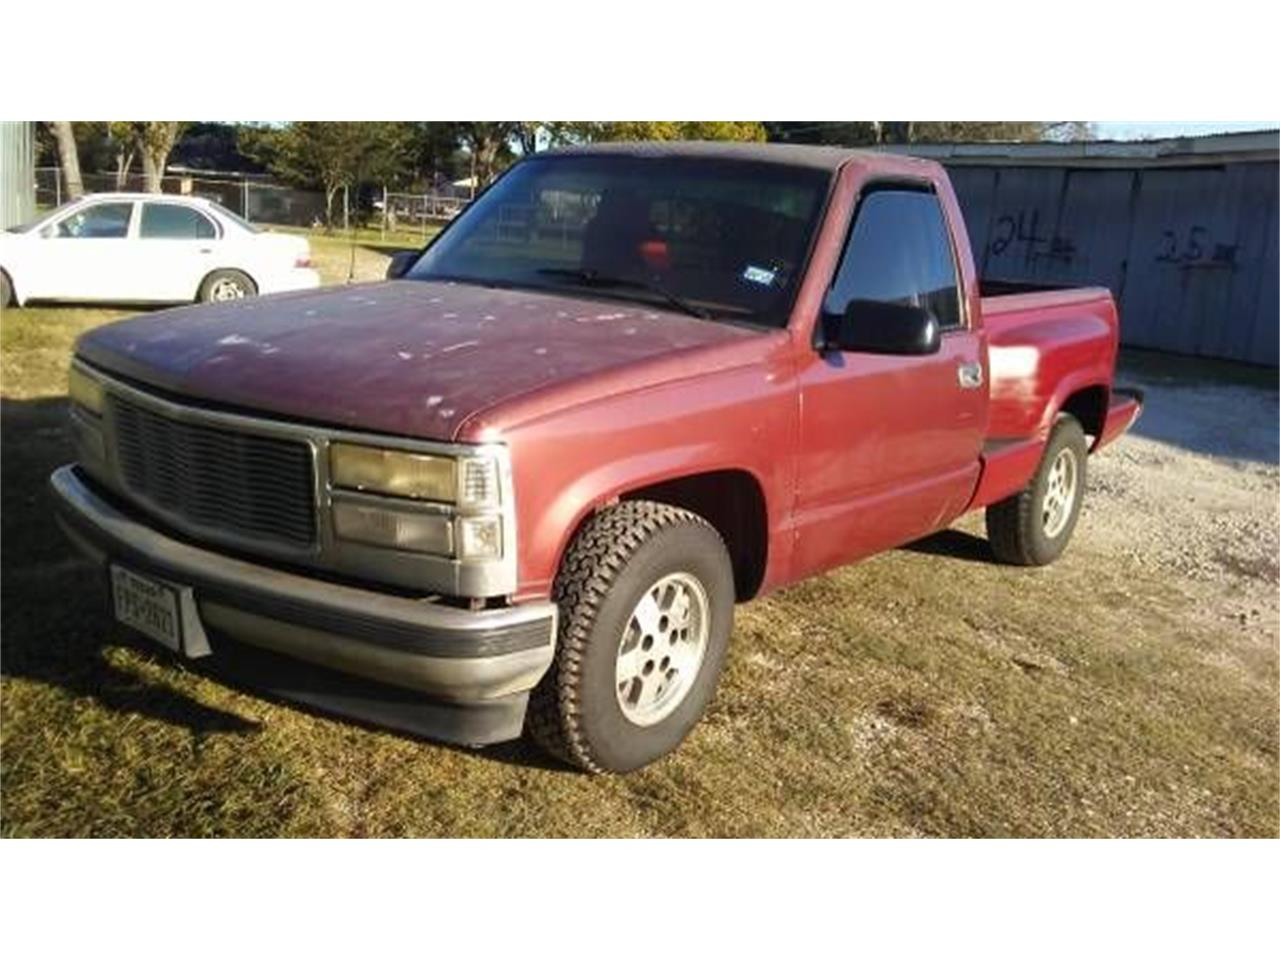 1988 gmc sierra for sale classiccars com cc 1127195 GMC Sierra 1500 16 Wheeles large picture of \u002788 sierra o5qz